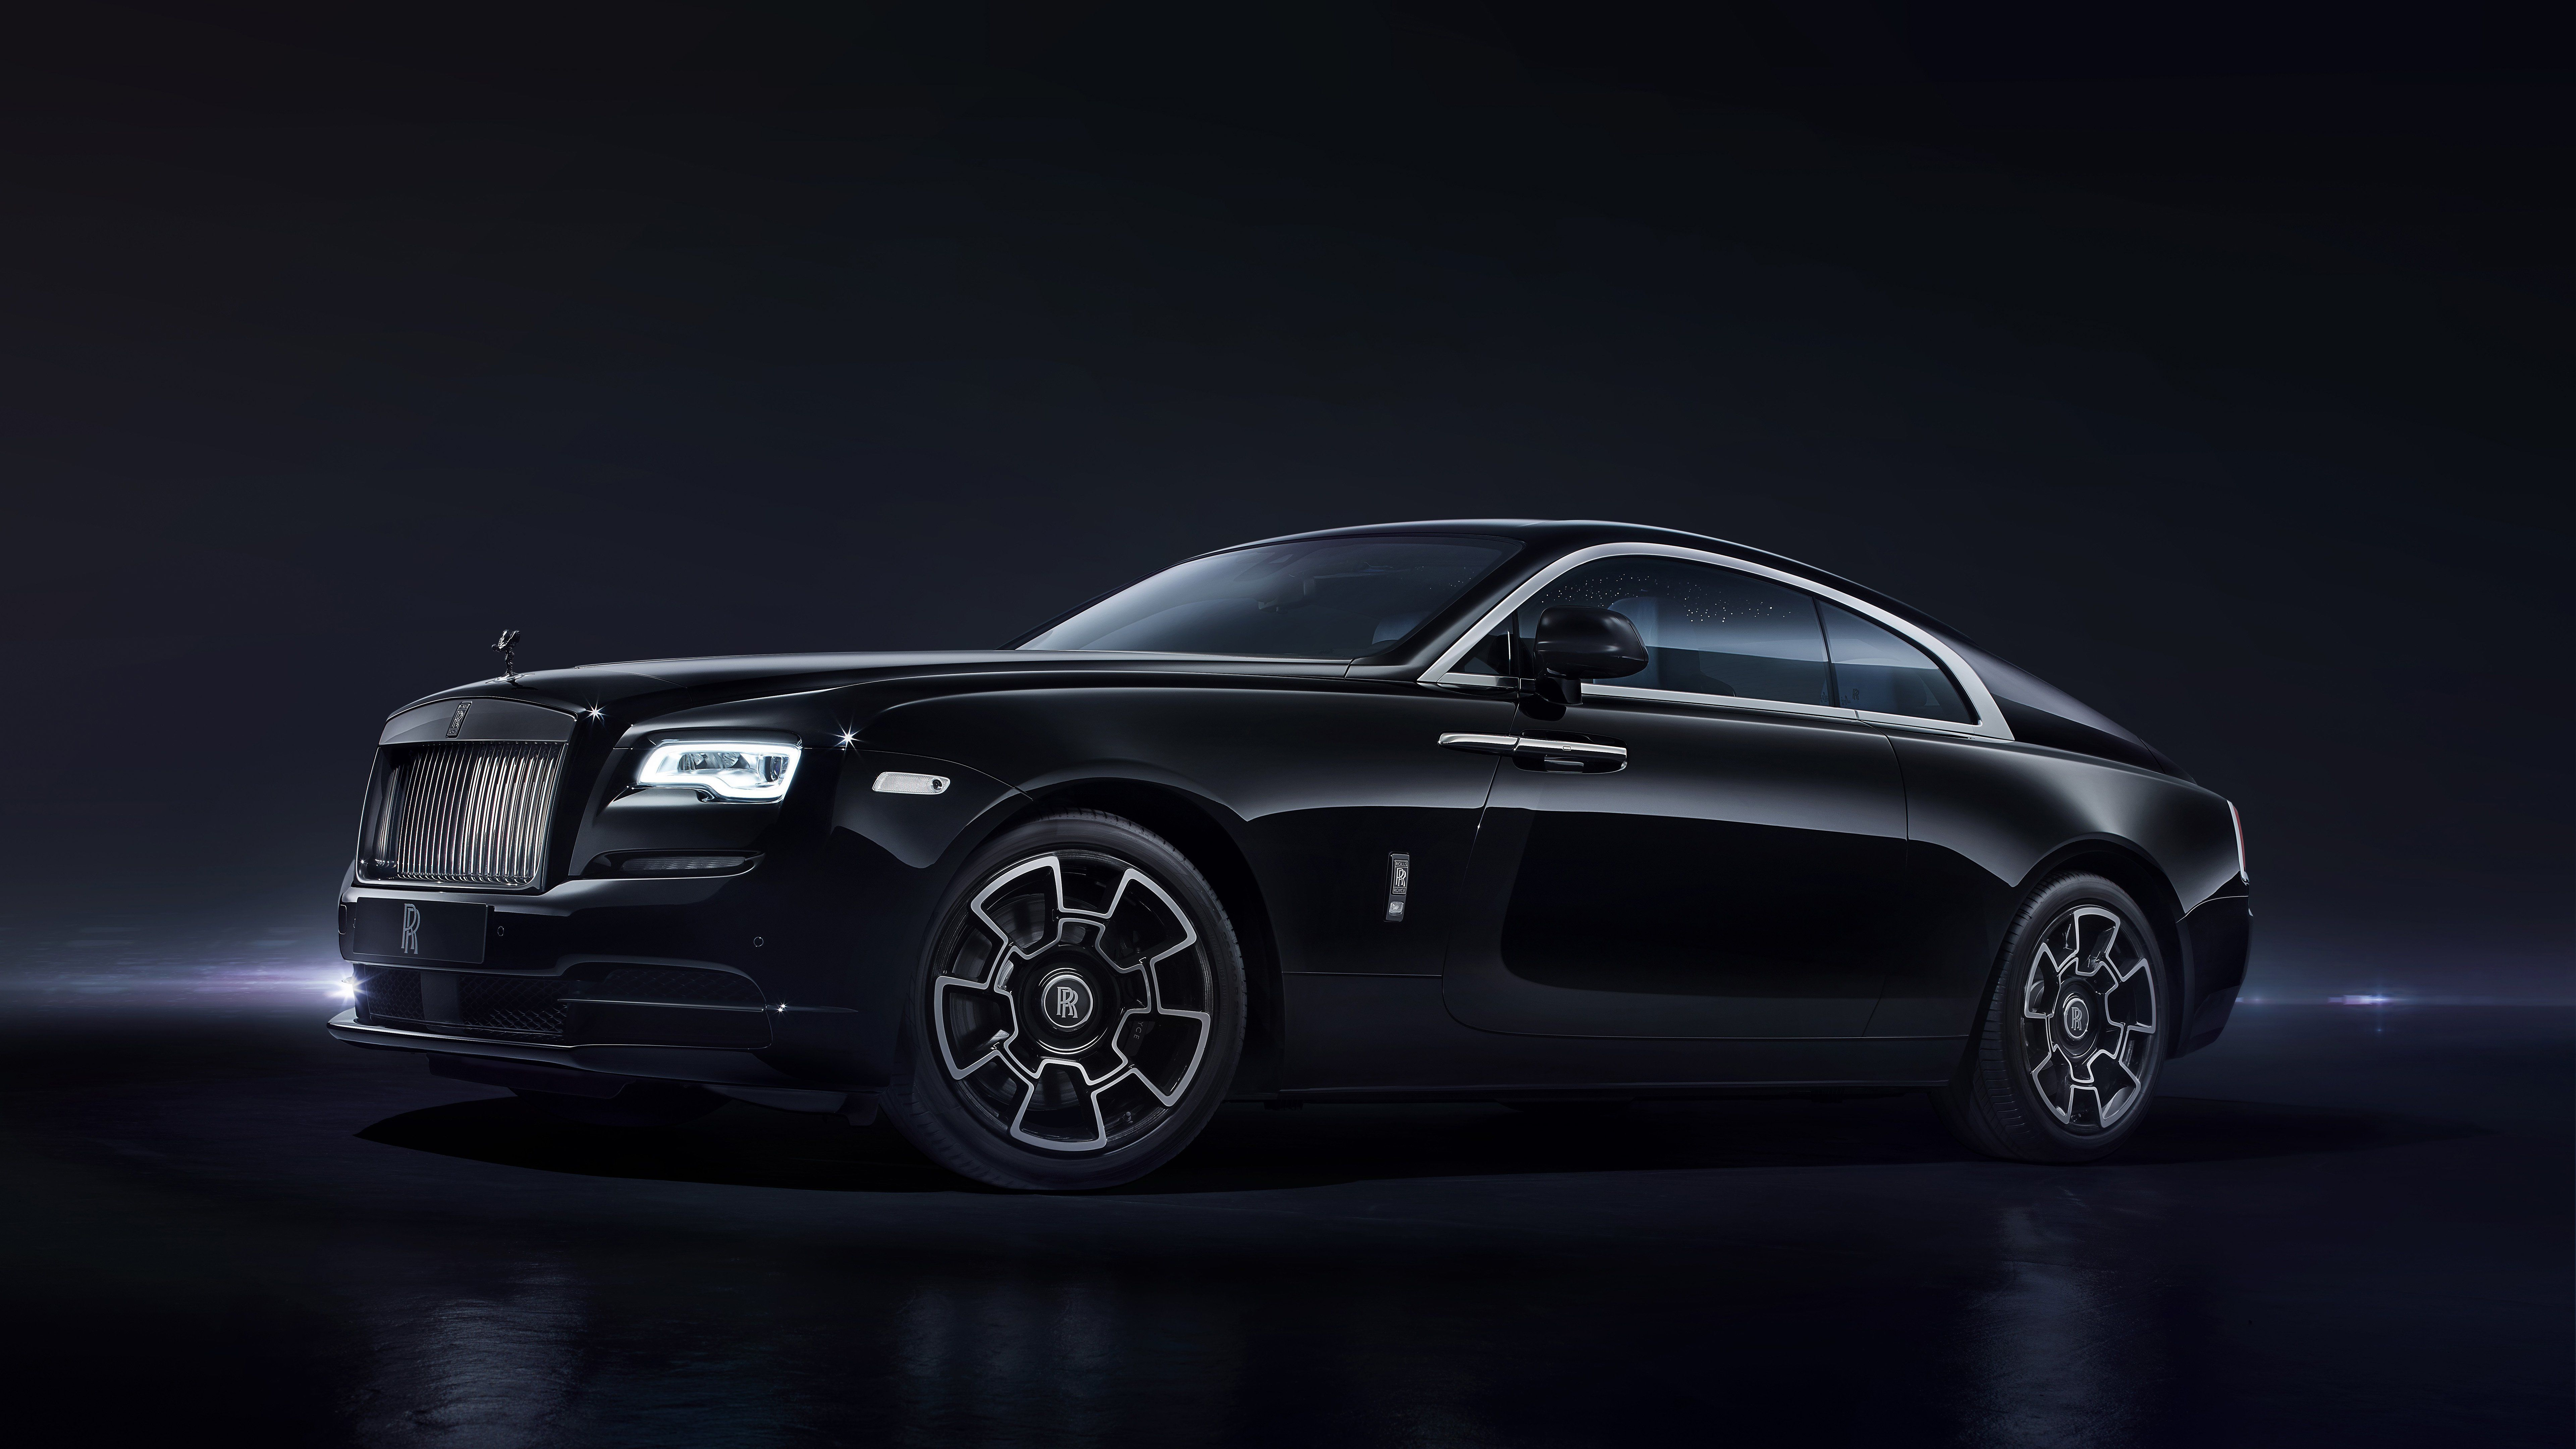 7680x4320 Rolls Royce Black 2017 8k HD 4k Wallpapers, Images ...